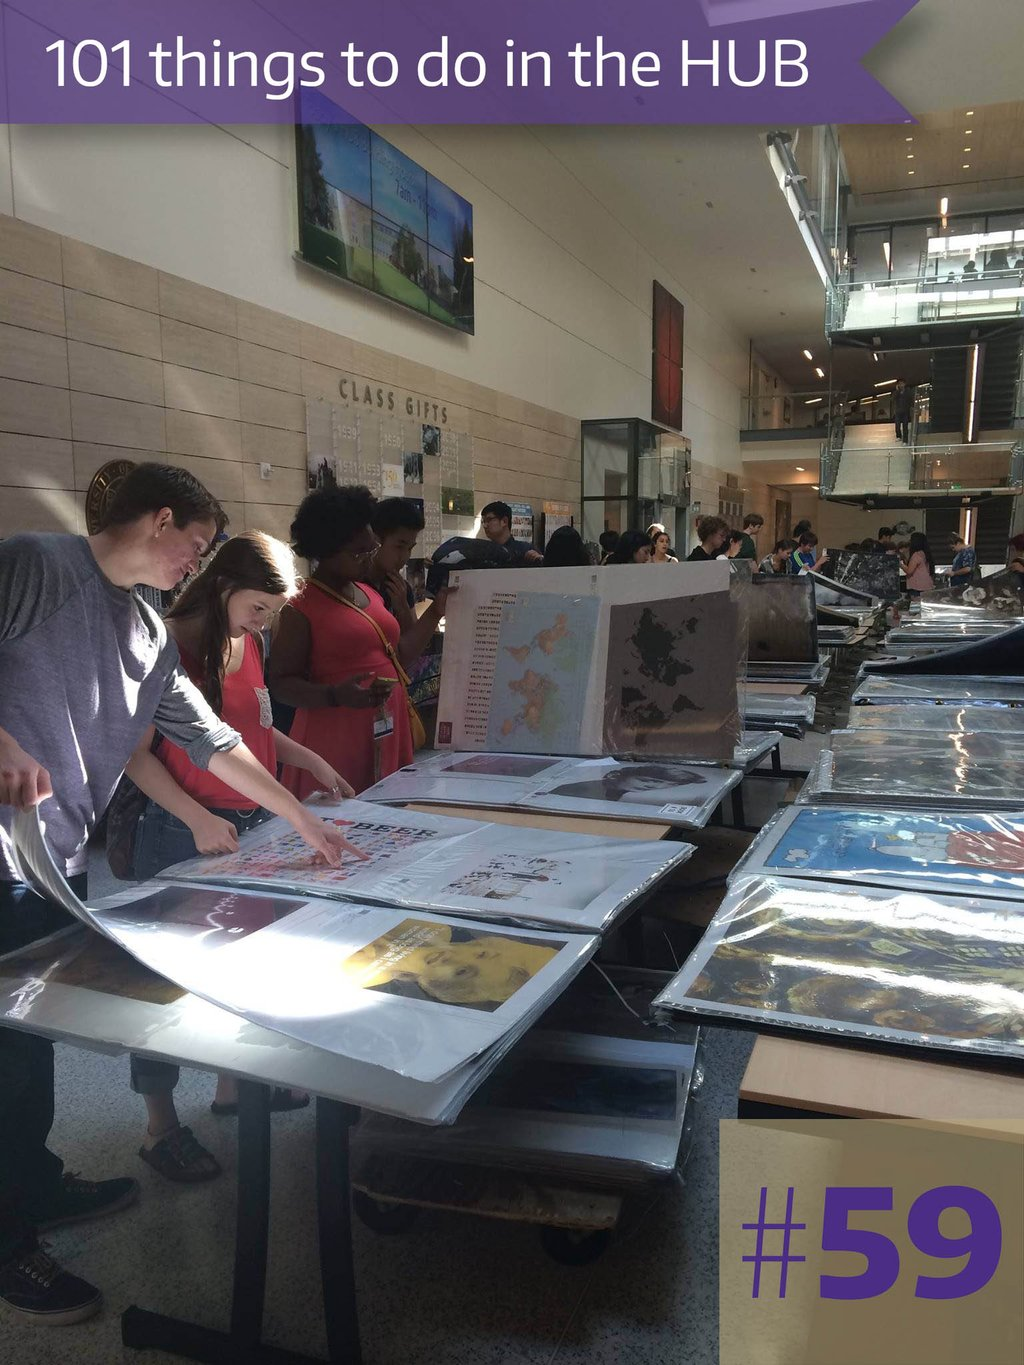 59. The Annual Poster Sale supports the HUB Art program.